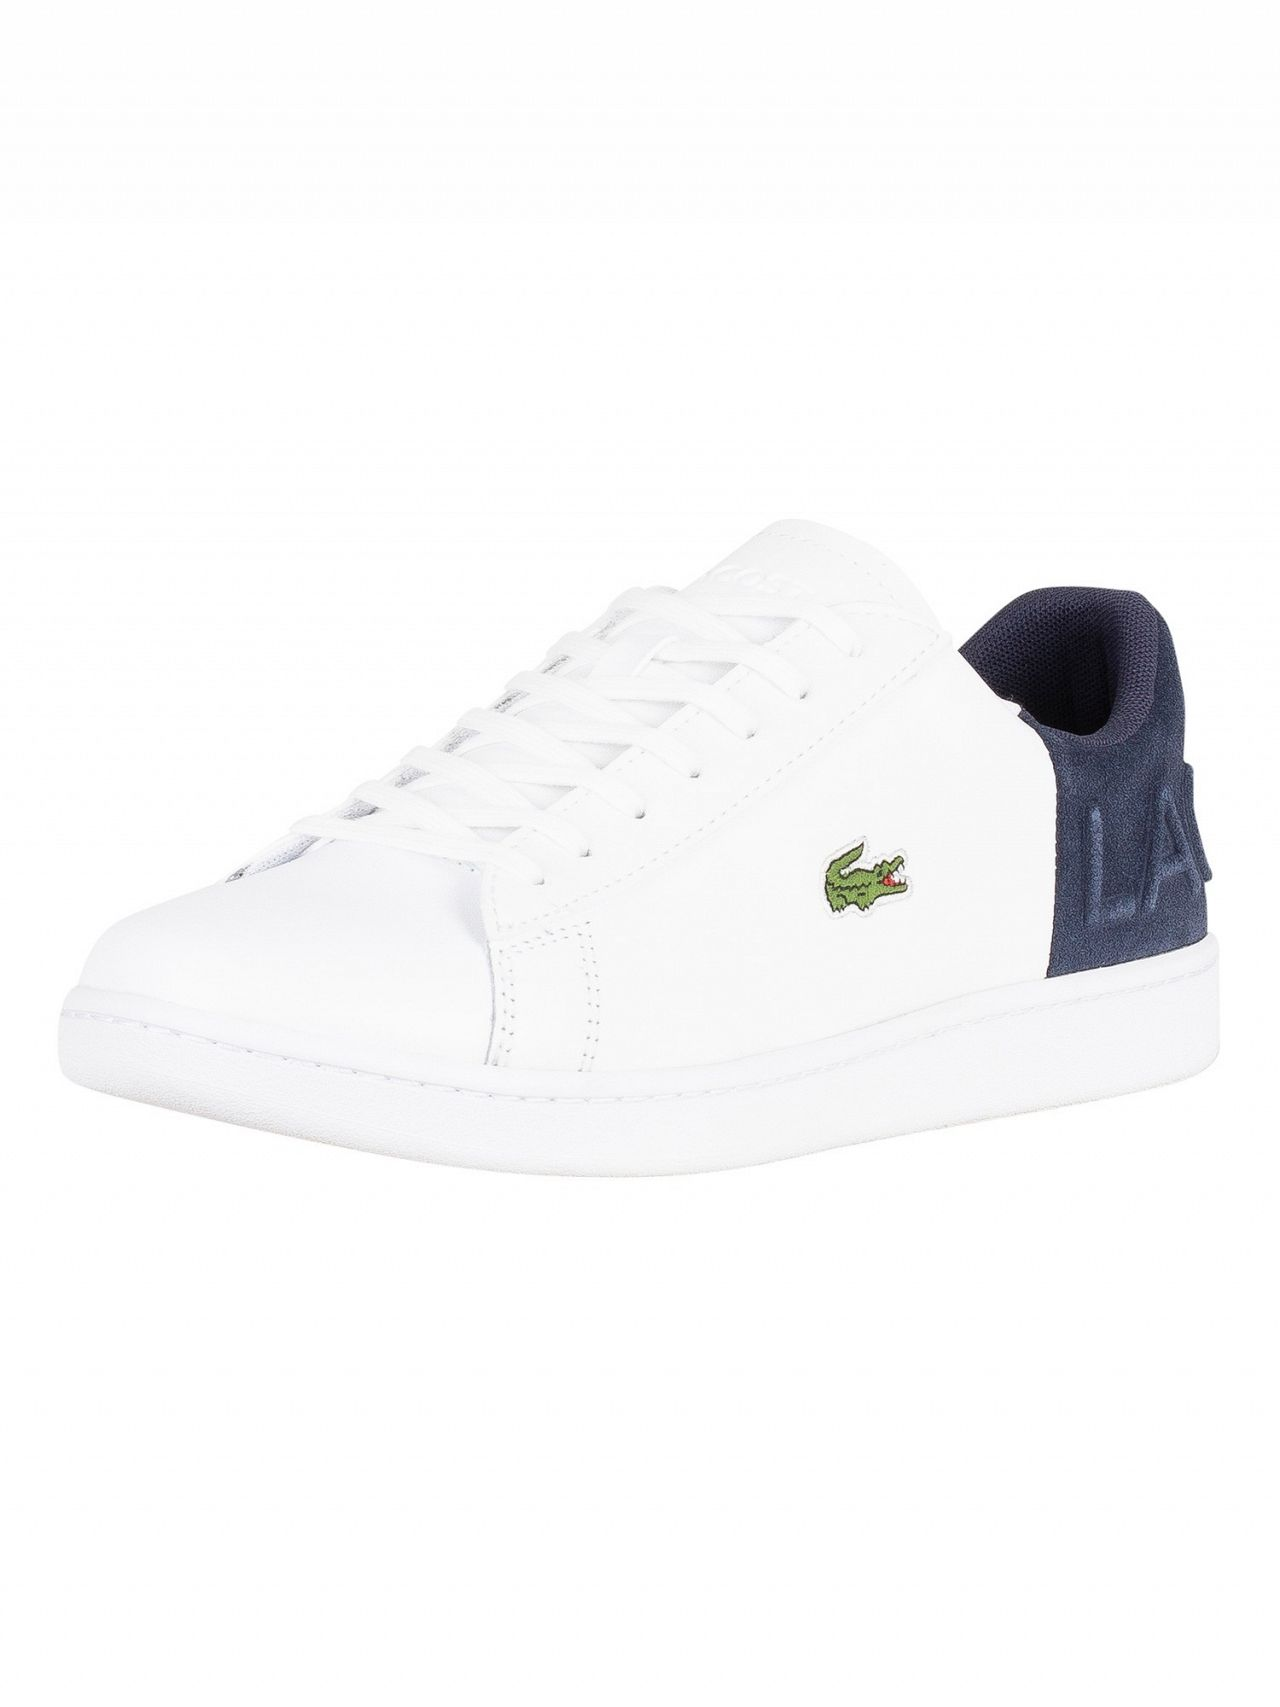 f1b392f2a4f9 Lacoste White Navy Carnaby Evo 318 2 QSP SPM Leather Trainers